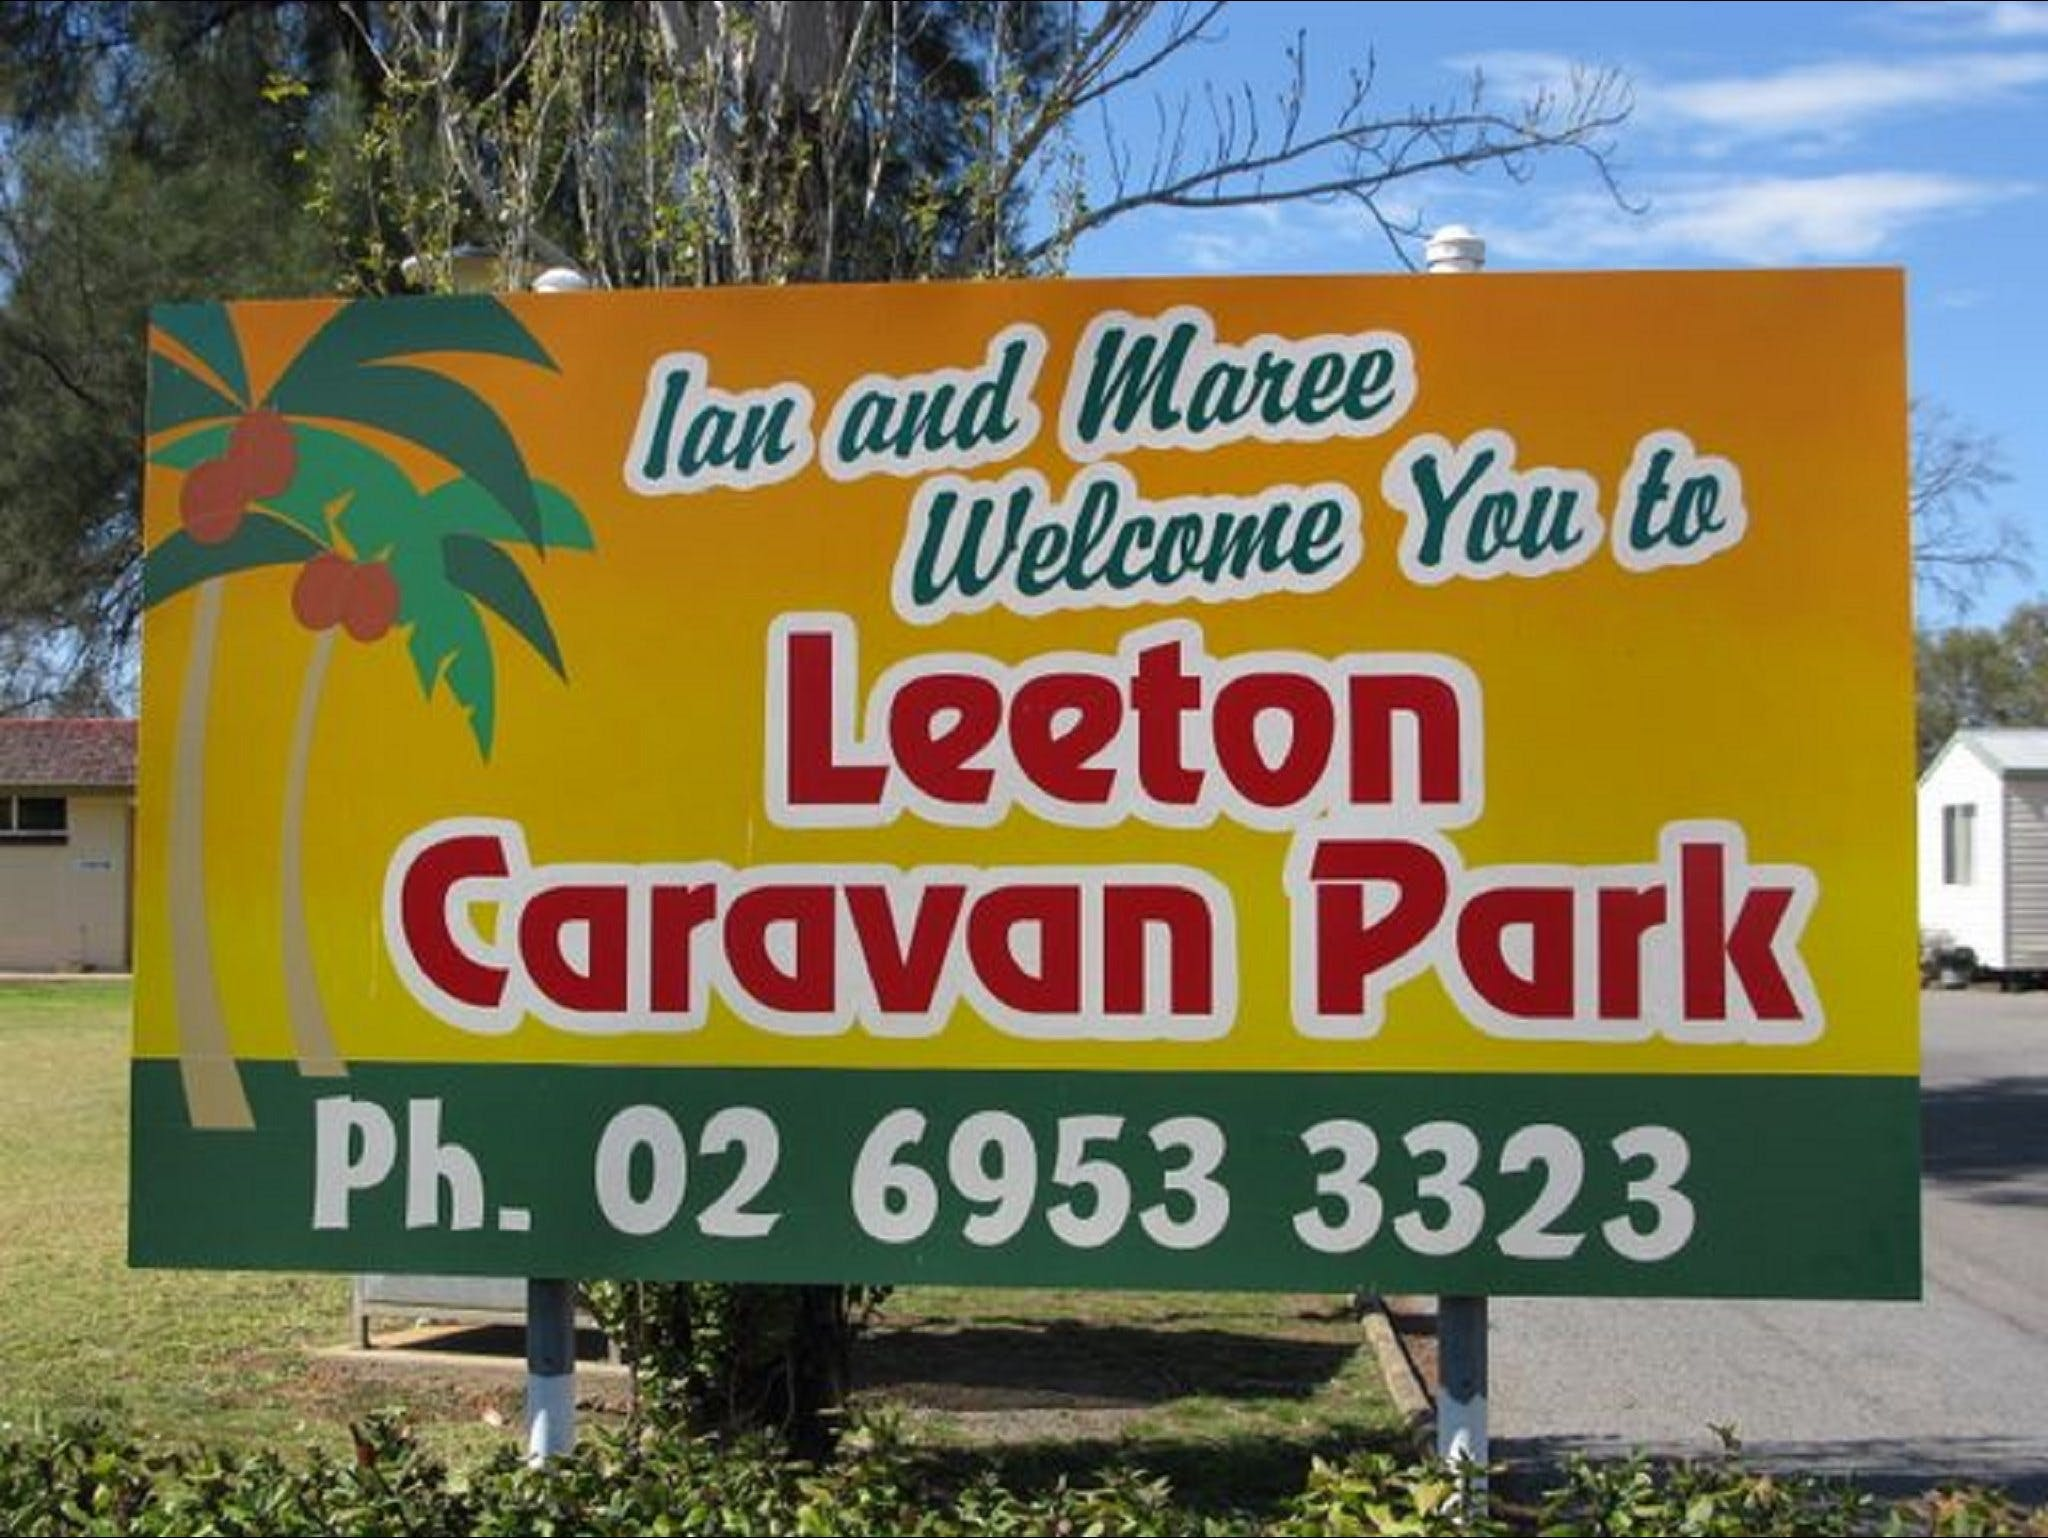 Leeton Caravan Park - South Australia Travel